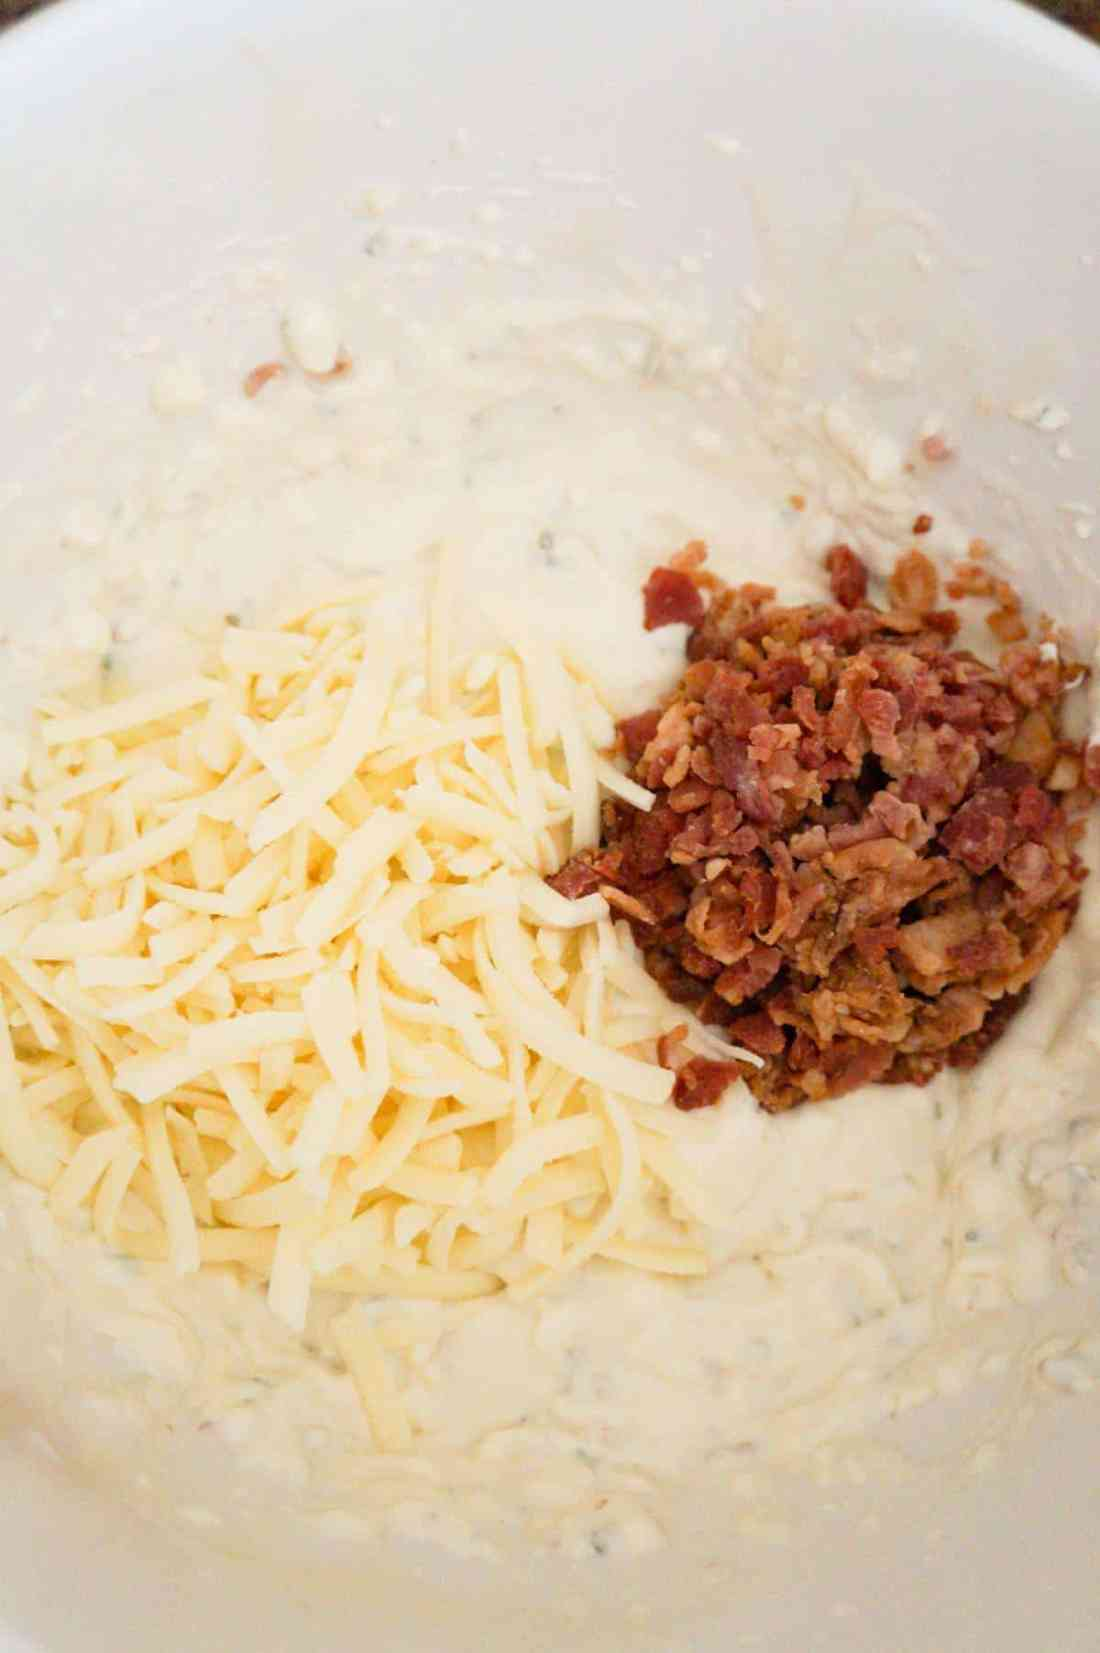 shredded mozzarella and crumbled bacon on top of cream cheese mixture in a mixing bowl